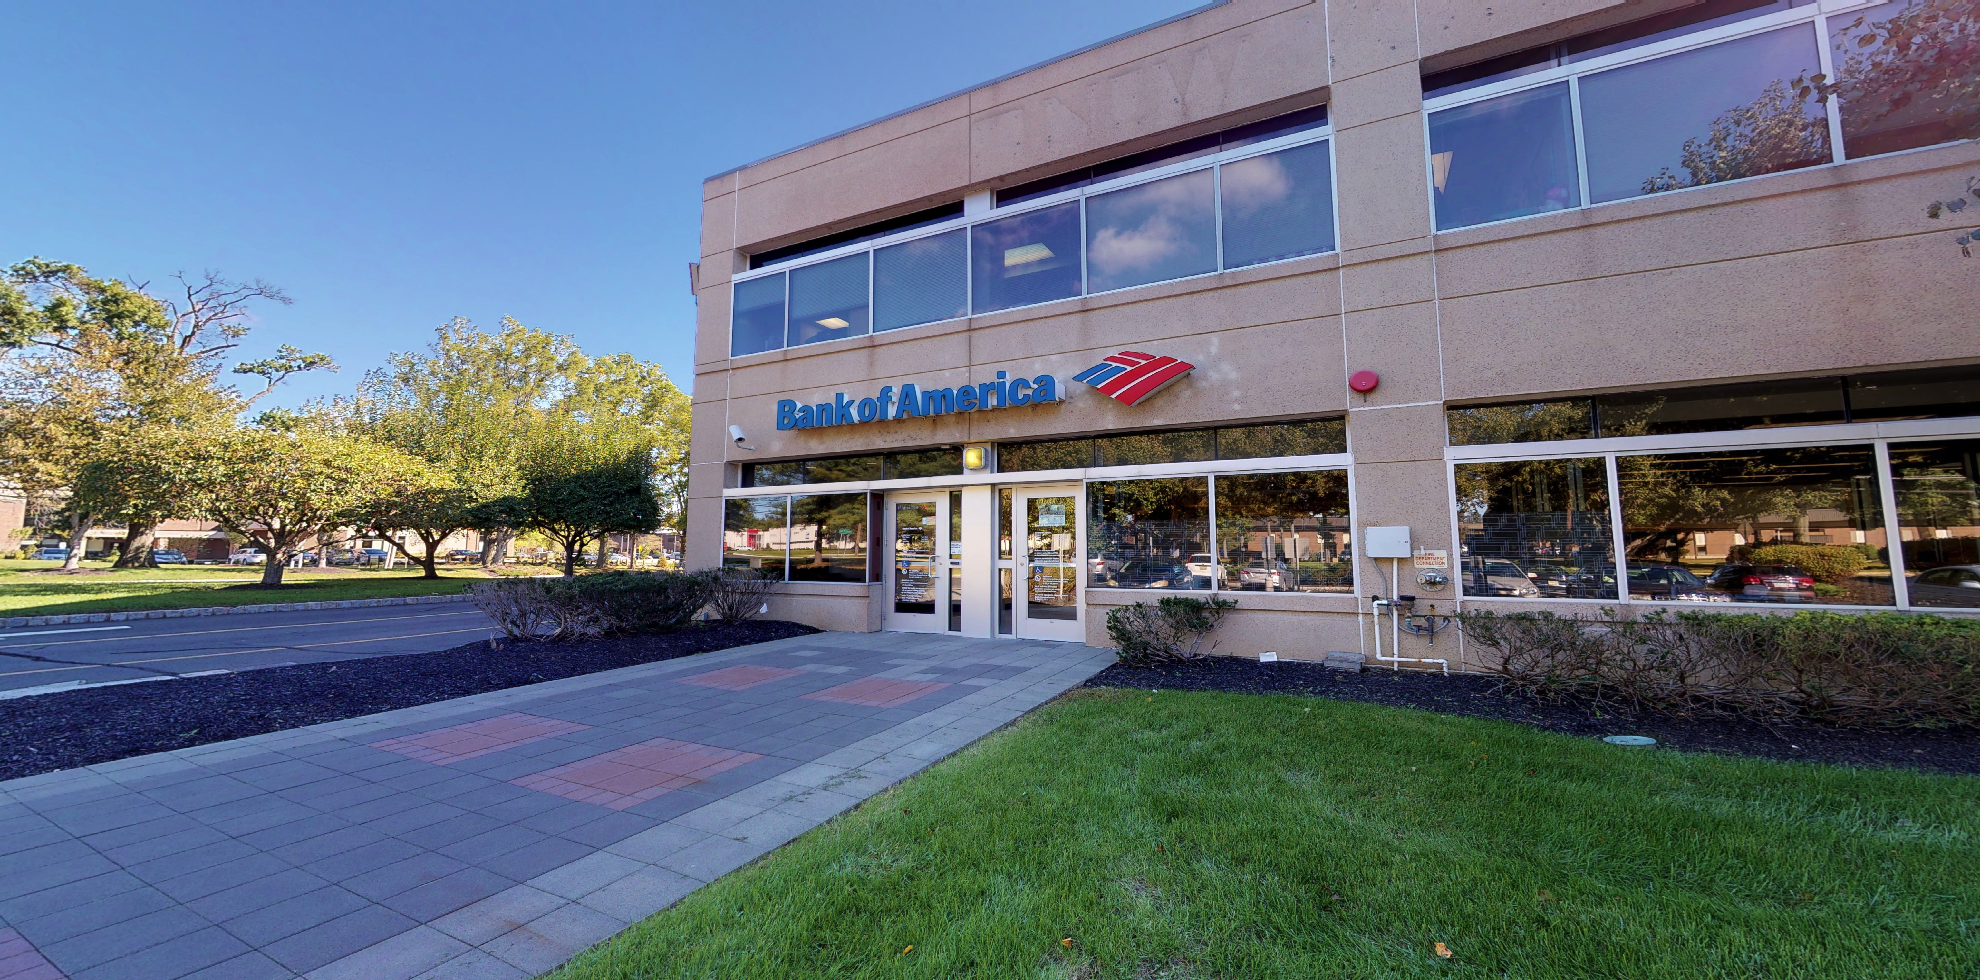 Bank of America financial center with drive-thru ATM | 3140 Princeton Pike, Lawrence Township, NJ 08648